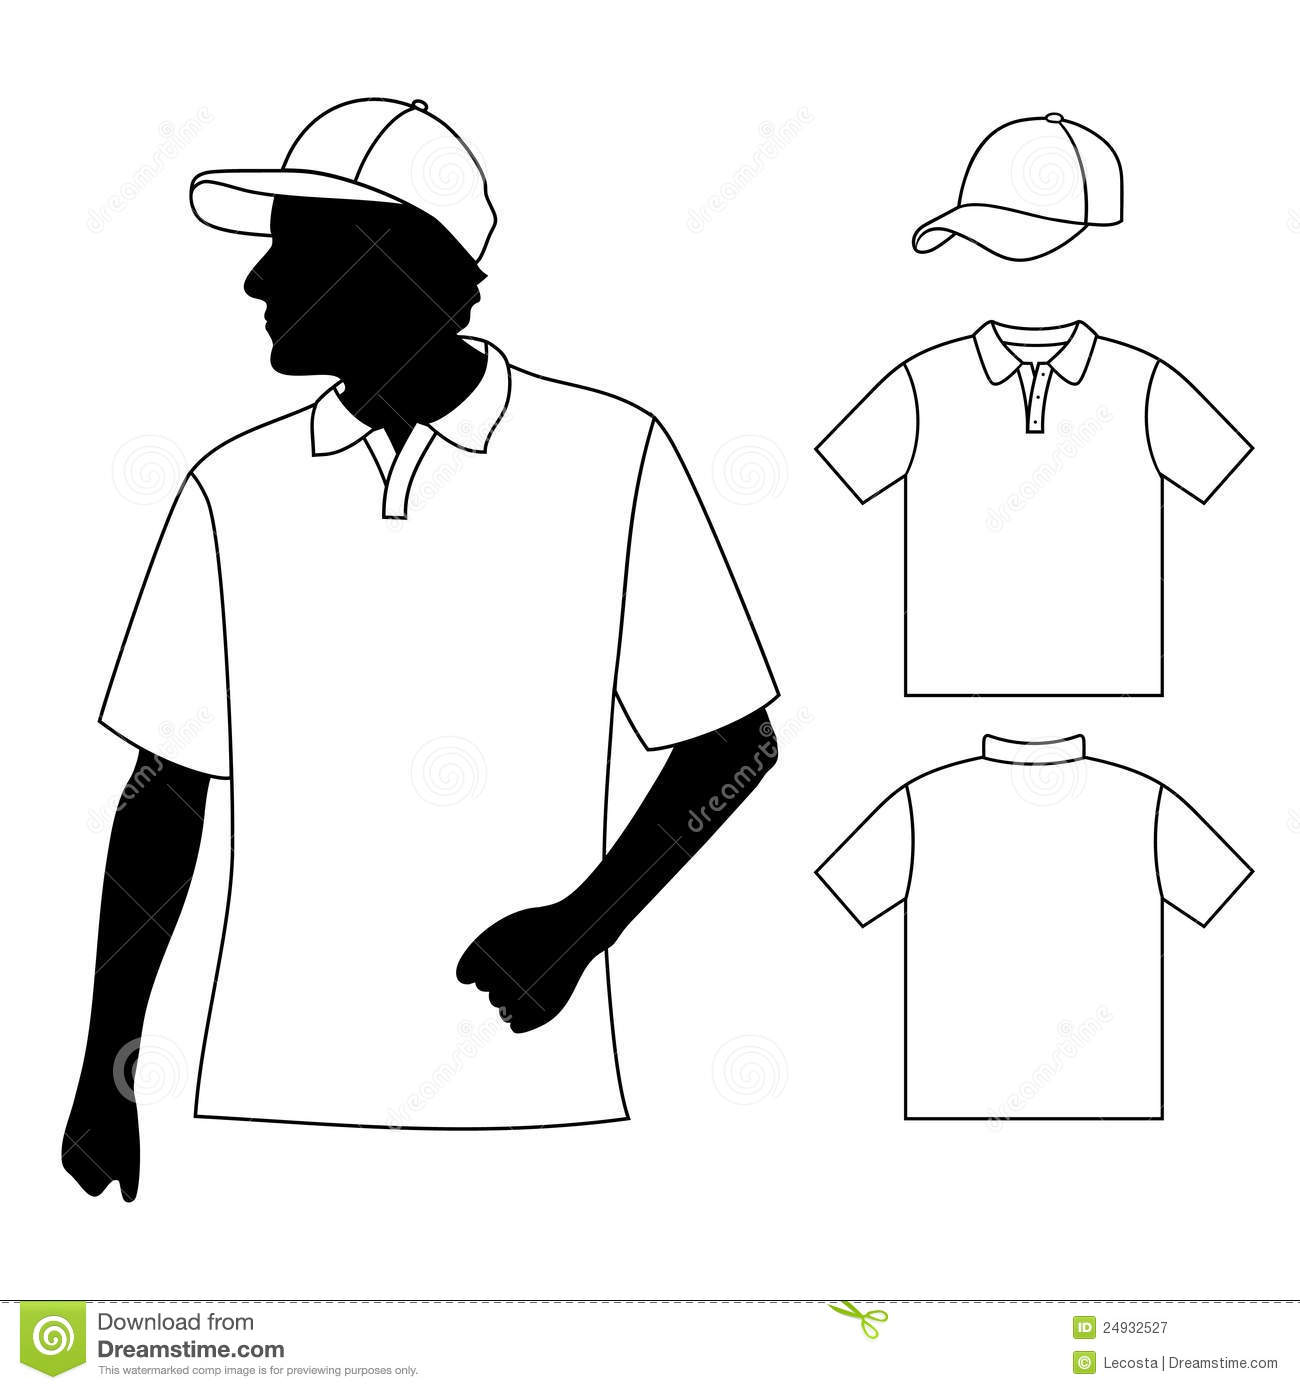 5610f128c T-shirt. Men's polo shirt template with human body silhouette and baseball  cap